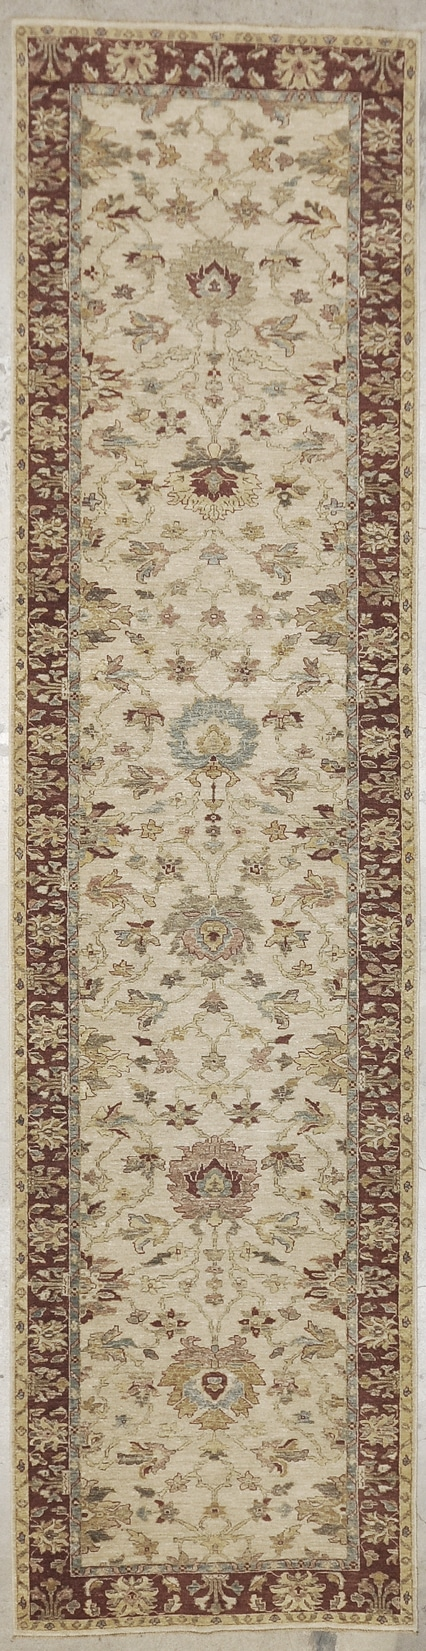 ziegler & co oushak rugs and more oriental carpet 33614-